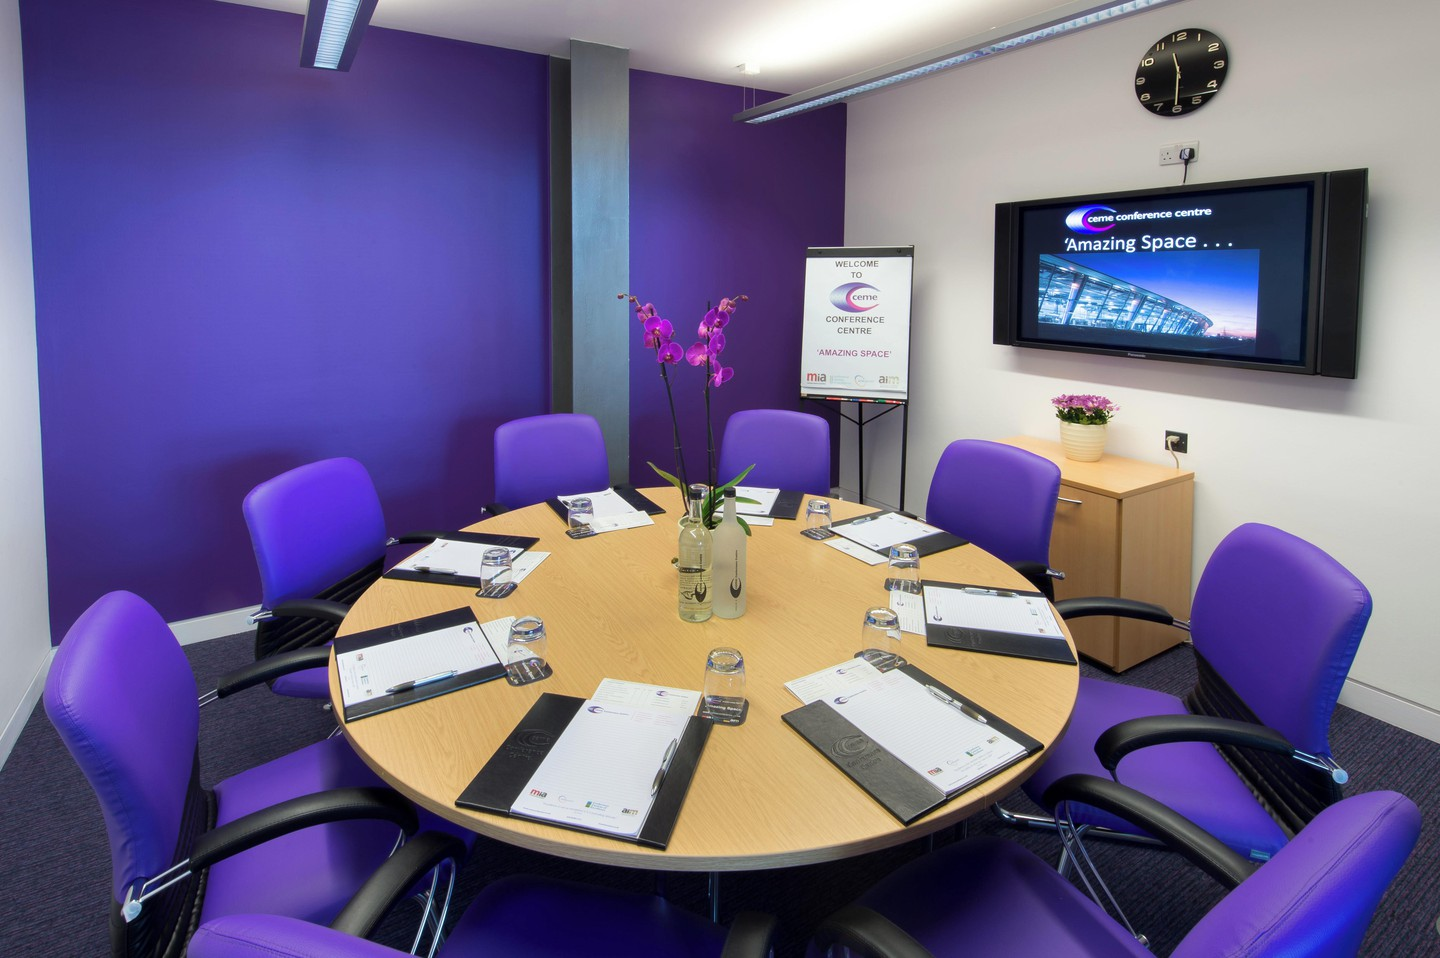 Greenhithe training rooms Salle de réunion CEME conference - Small room 183 image 3